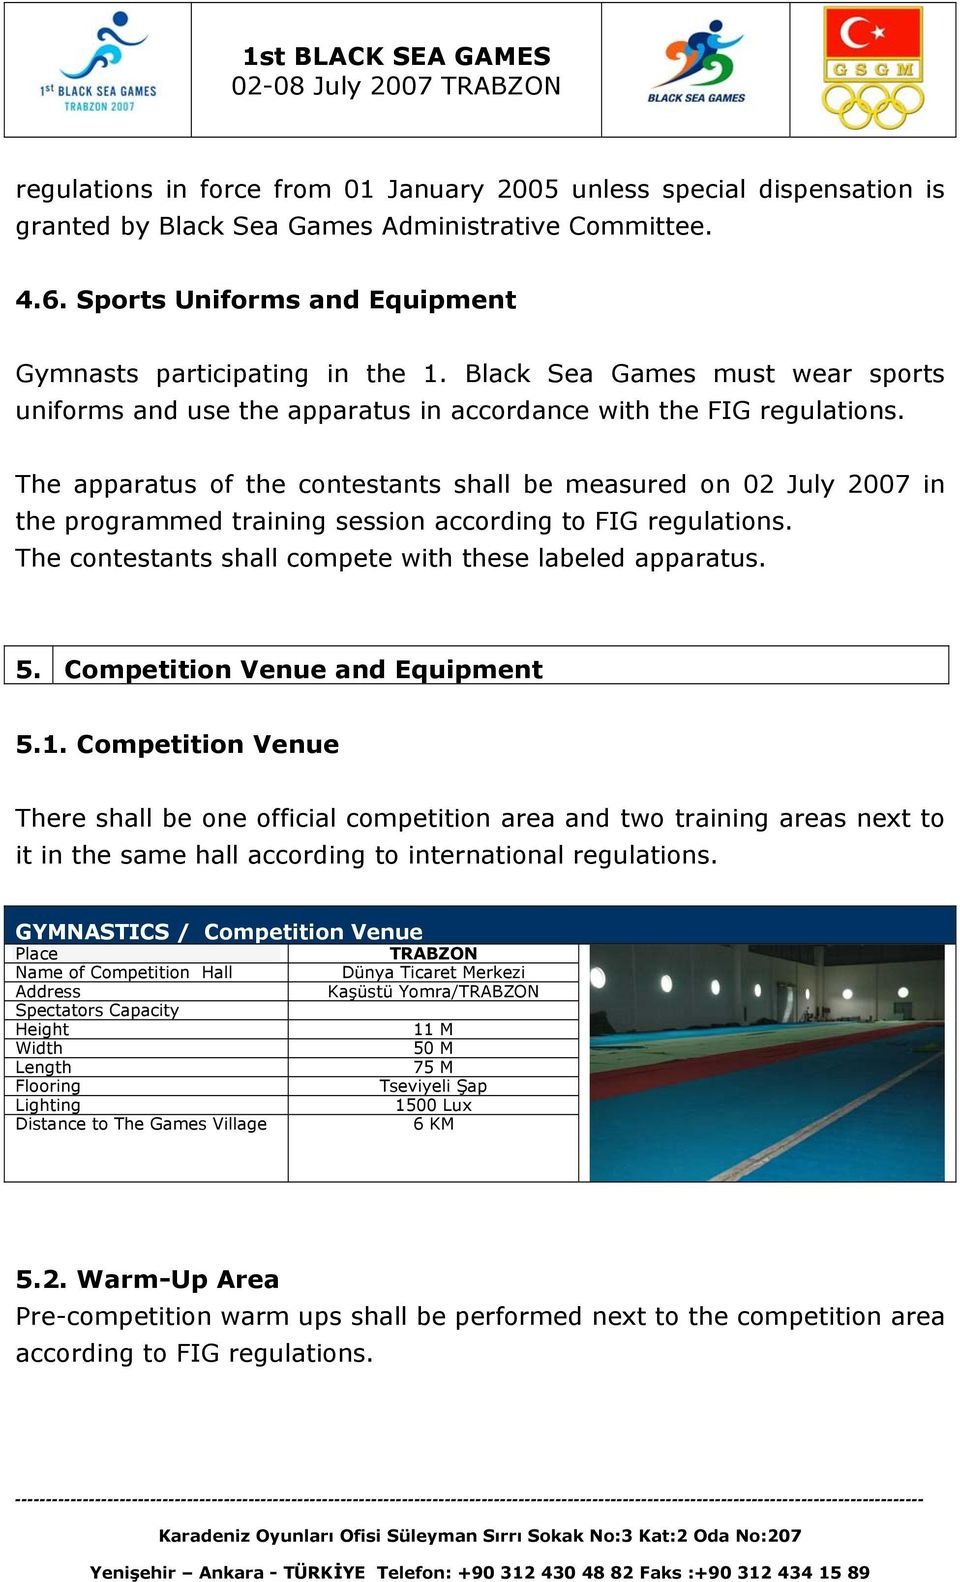 The apparatus of the contestants shall be measured on 02 July 2007 in the programmed training session according to FIG regulations. The contestants shall compete with these labeled apparatus. 5.